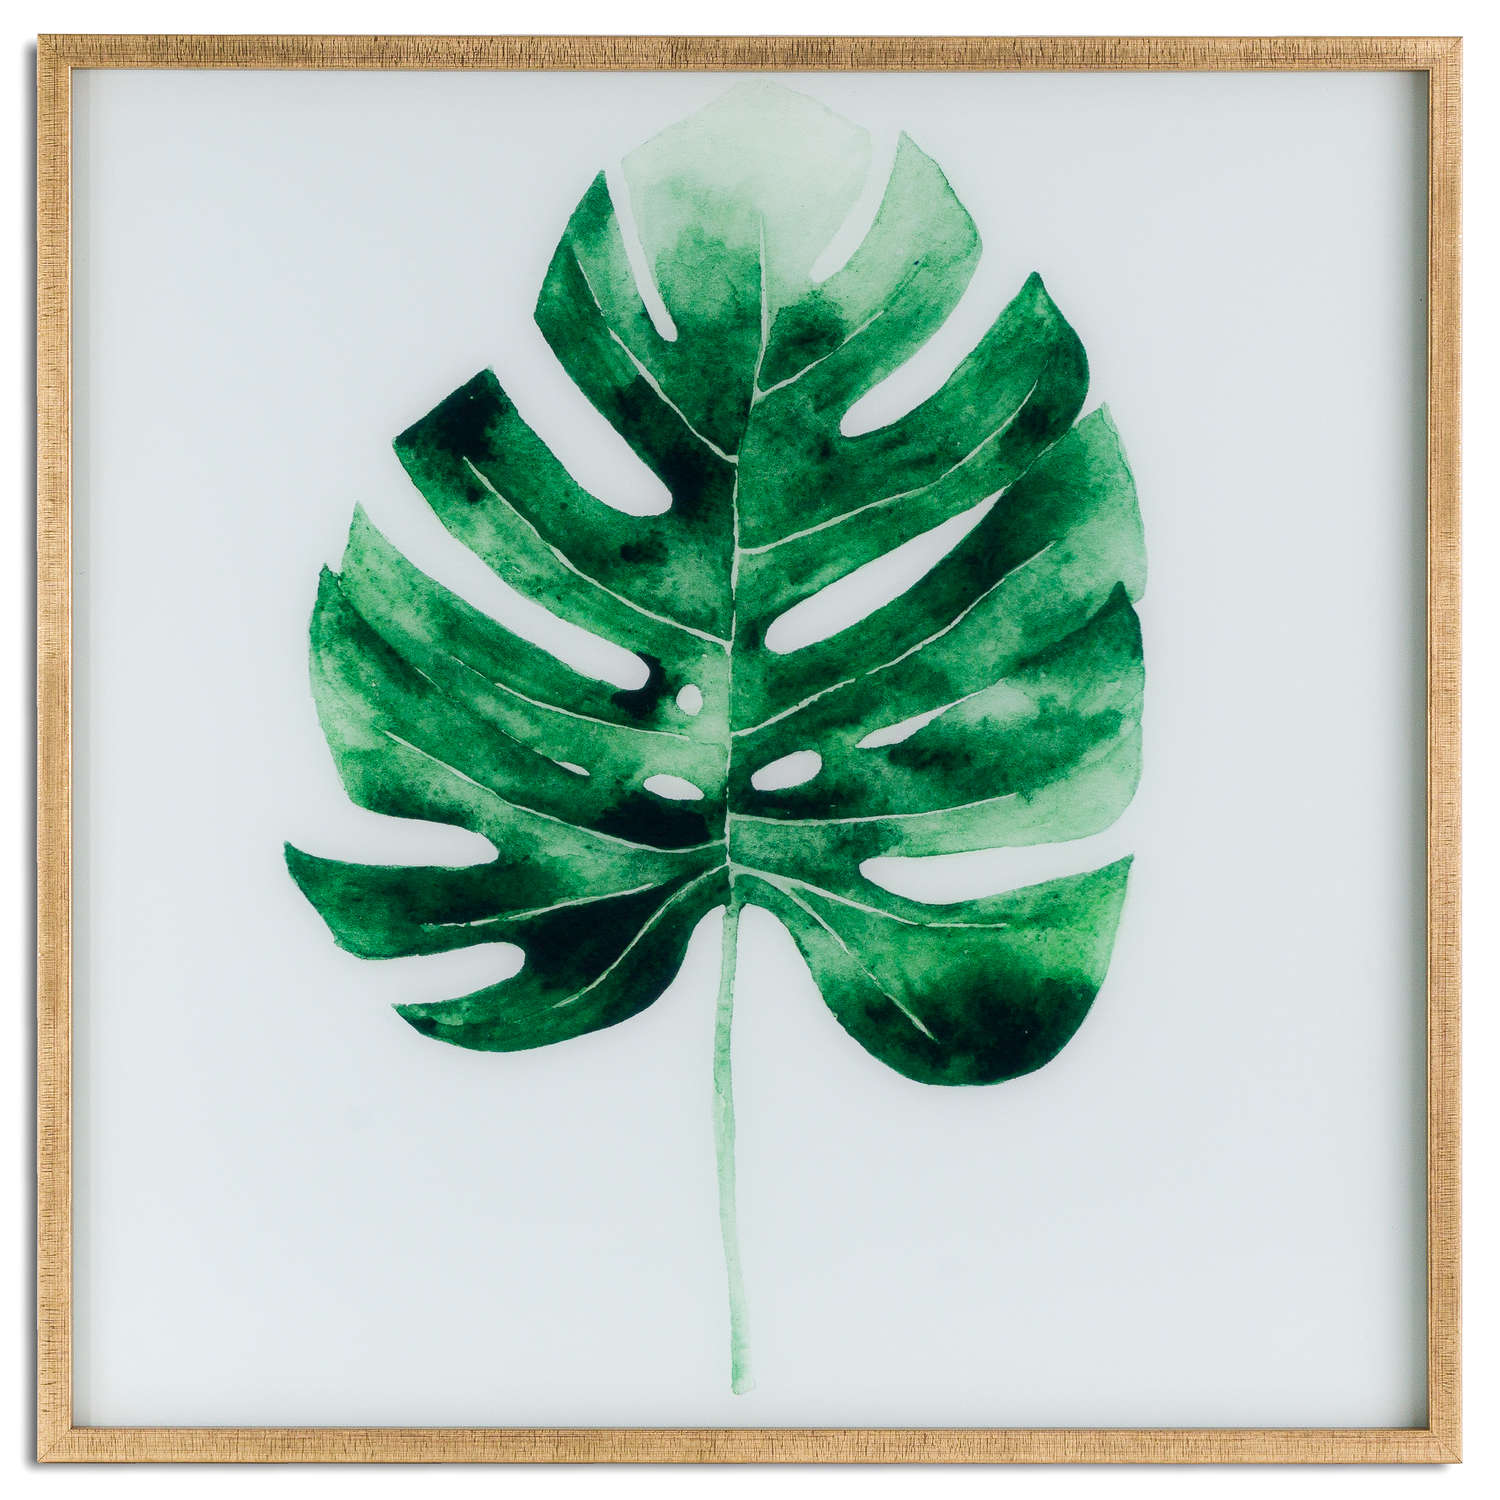 Cheese Plant Glass Image In Gold Frame - Image 1